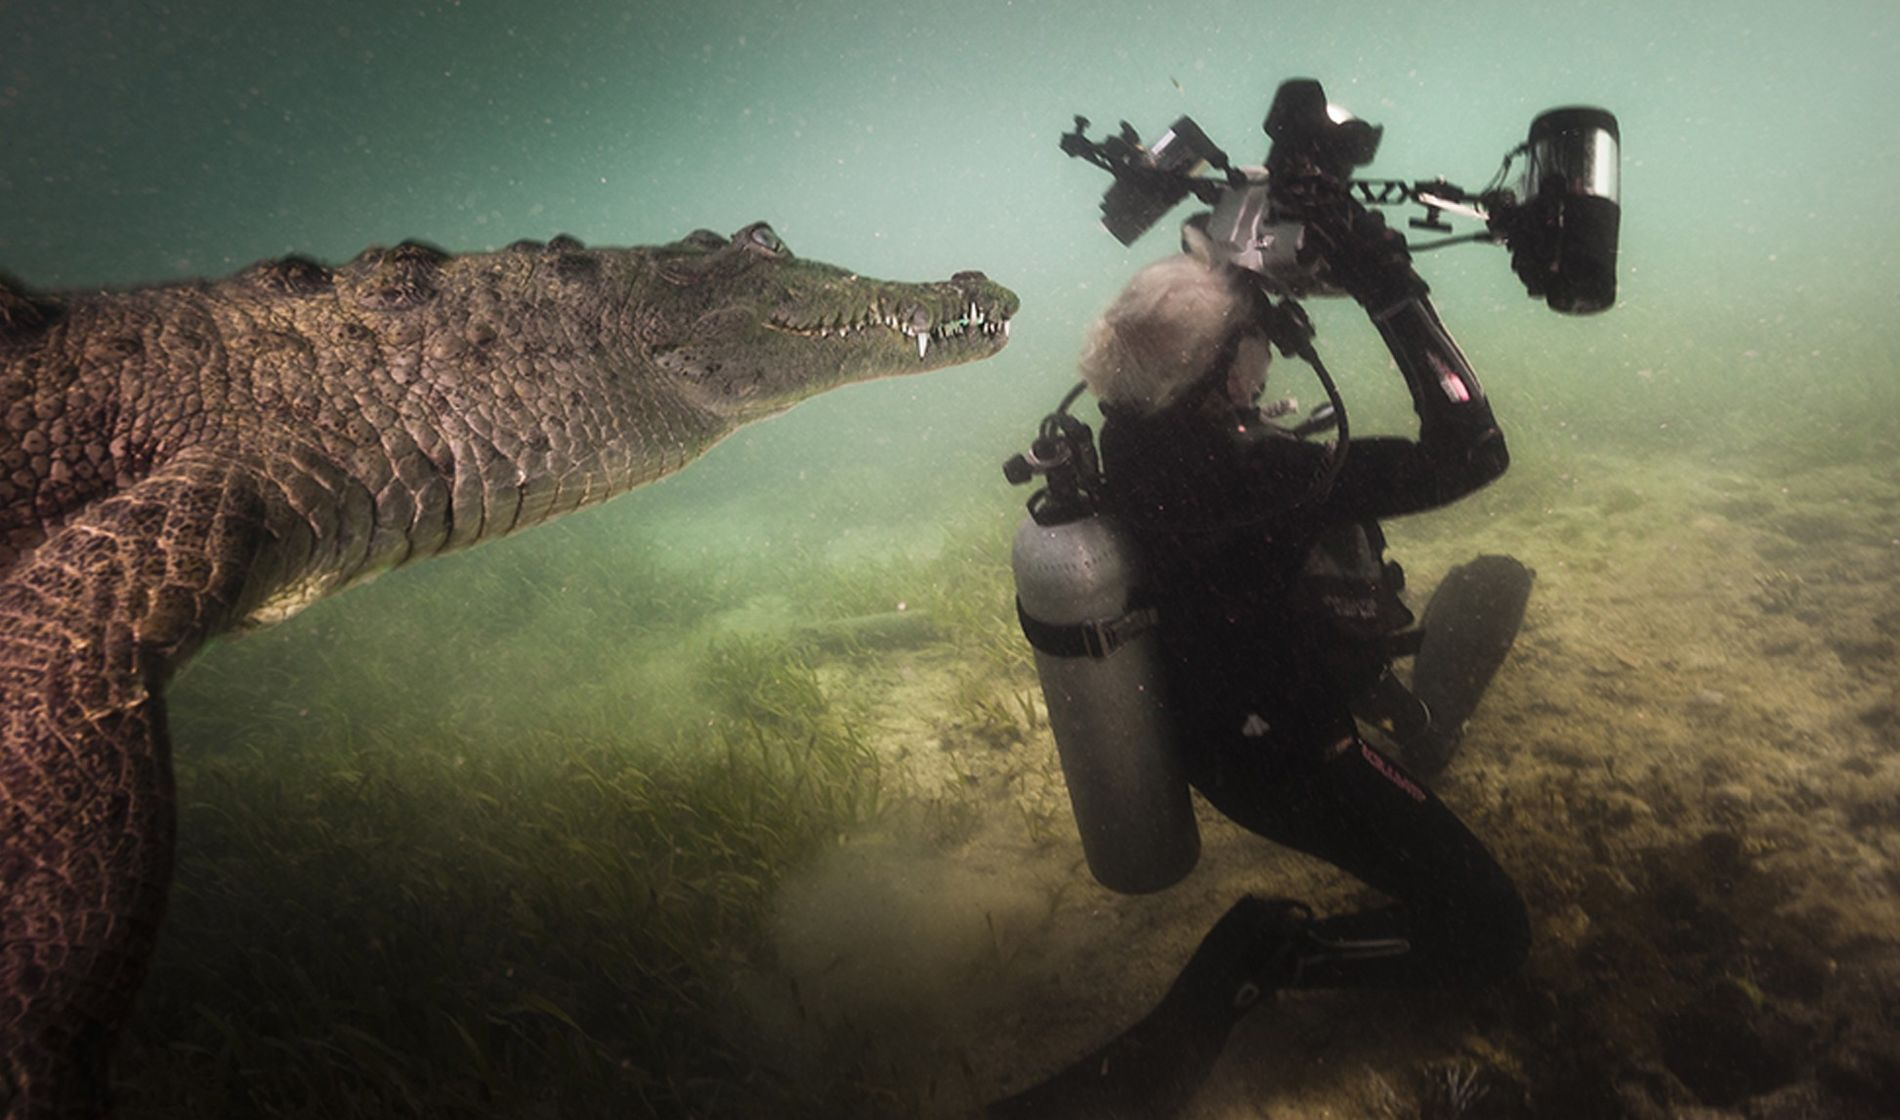 Photographer Jennifer Hayes is visited by a curious crocodile while photographing in the mangroves of the ...